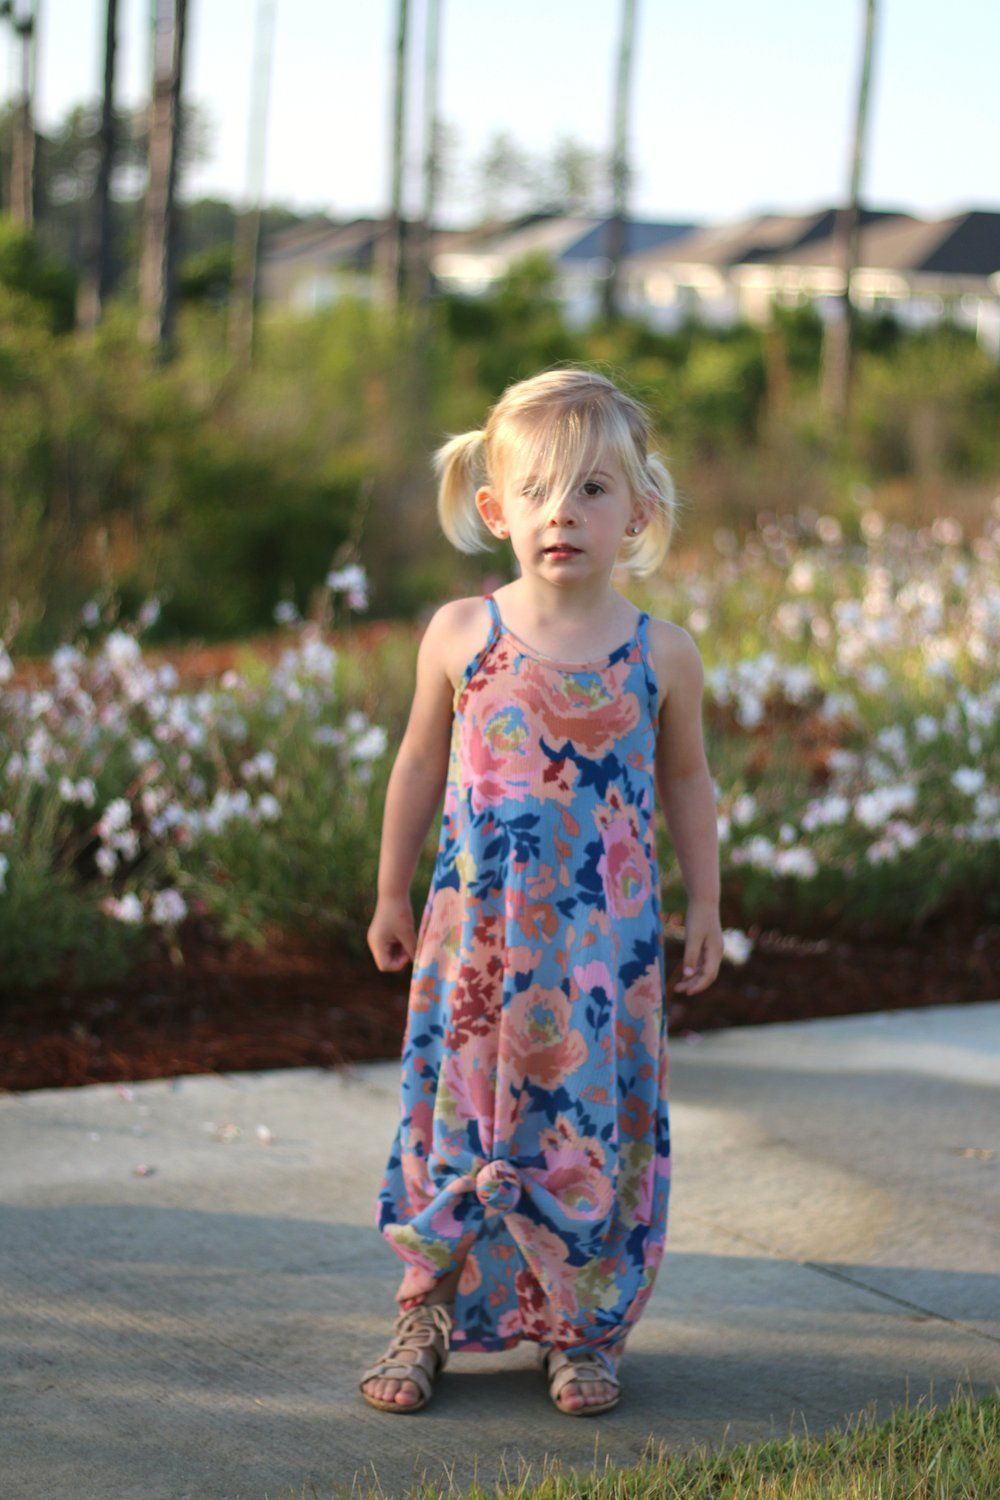 Charming Warm Weather Vintage Inspired Frocks Featuring: Free Falling PDF Pattern Girls 2T-14yrs